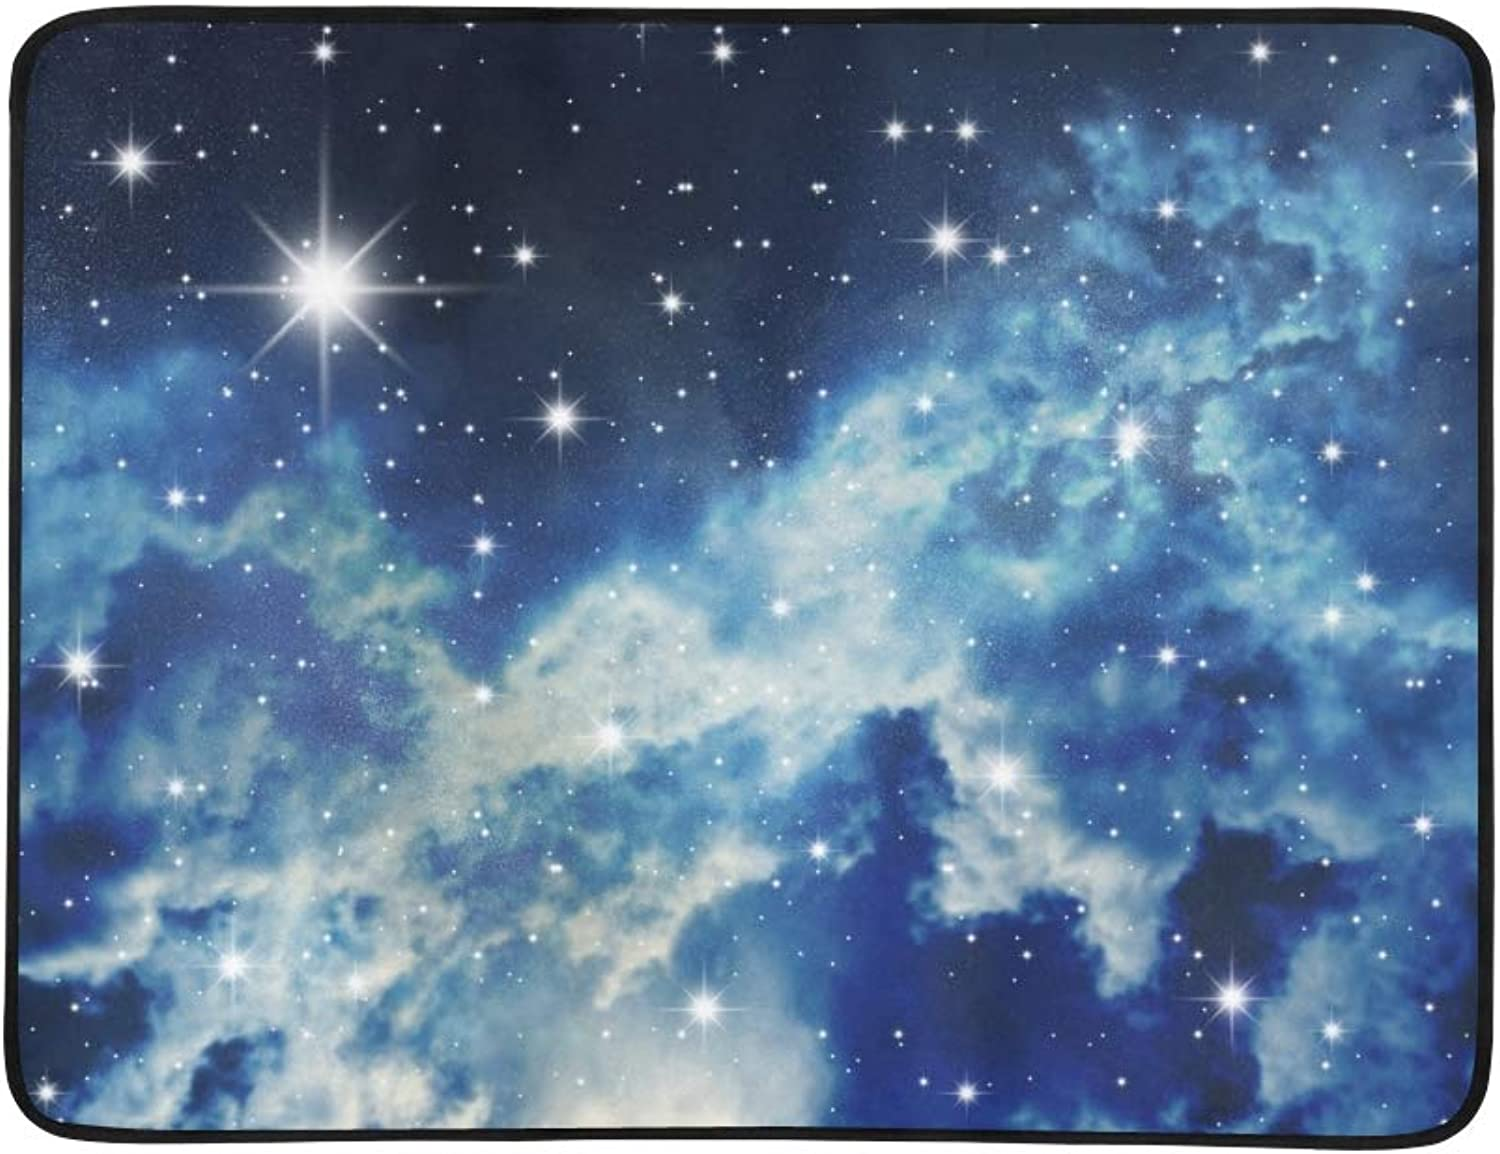 Big Starry Congestion On Night Sky Portable and Foldable Blanket Mat 60x78 Inch Handy Mat for Camping Picnic Beach Indoor Outdoor Travel